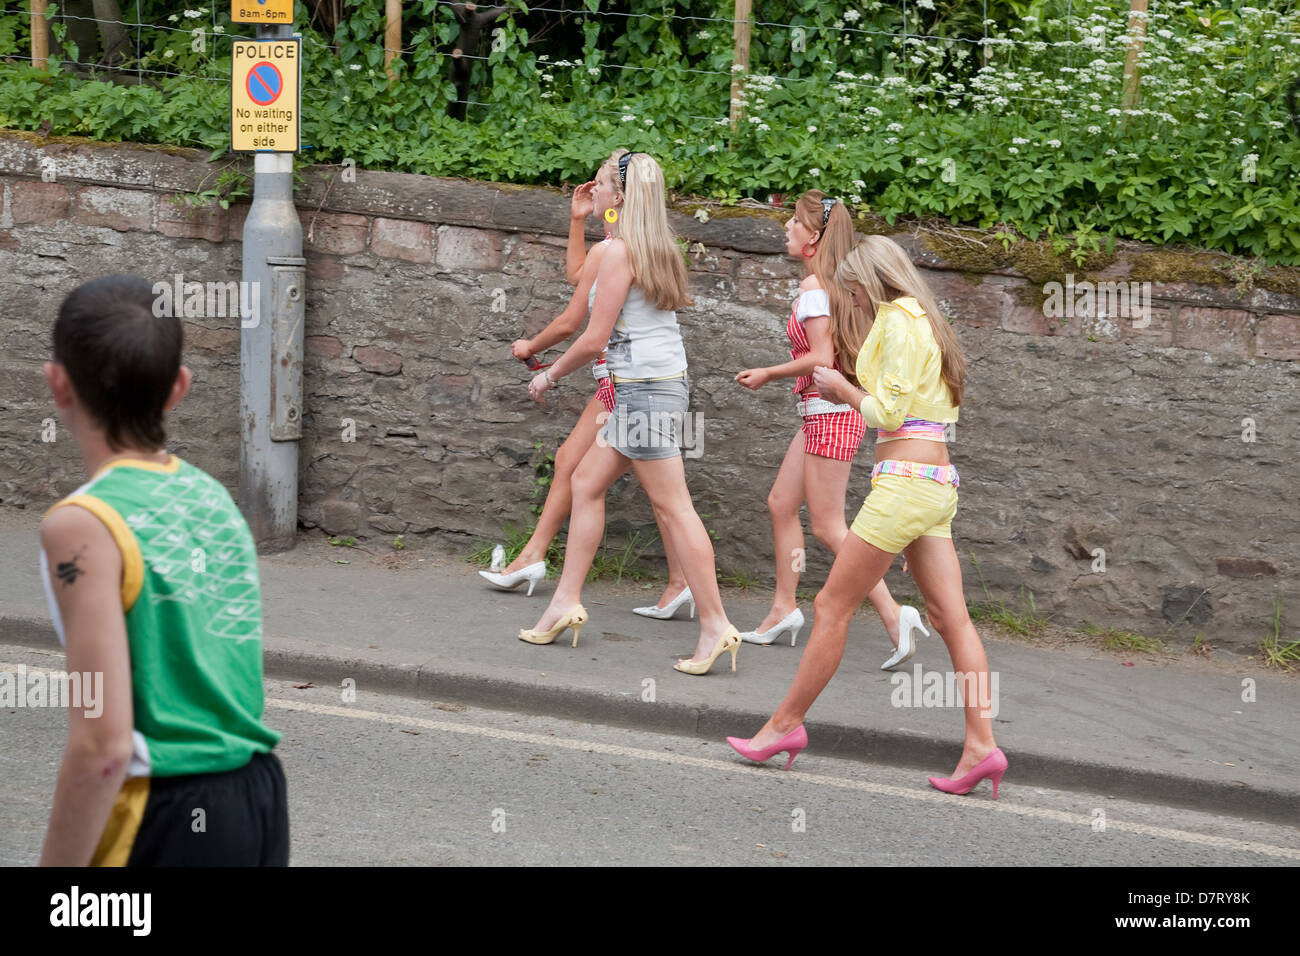 Young women at the Appleby Fair, an annual gathering of Gypsy and Traveller communities from UK and Ireland in Cumbria, - Stock Image